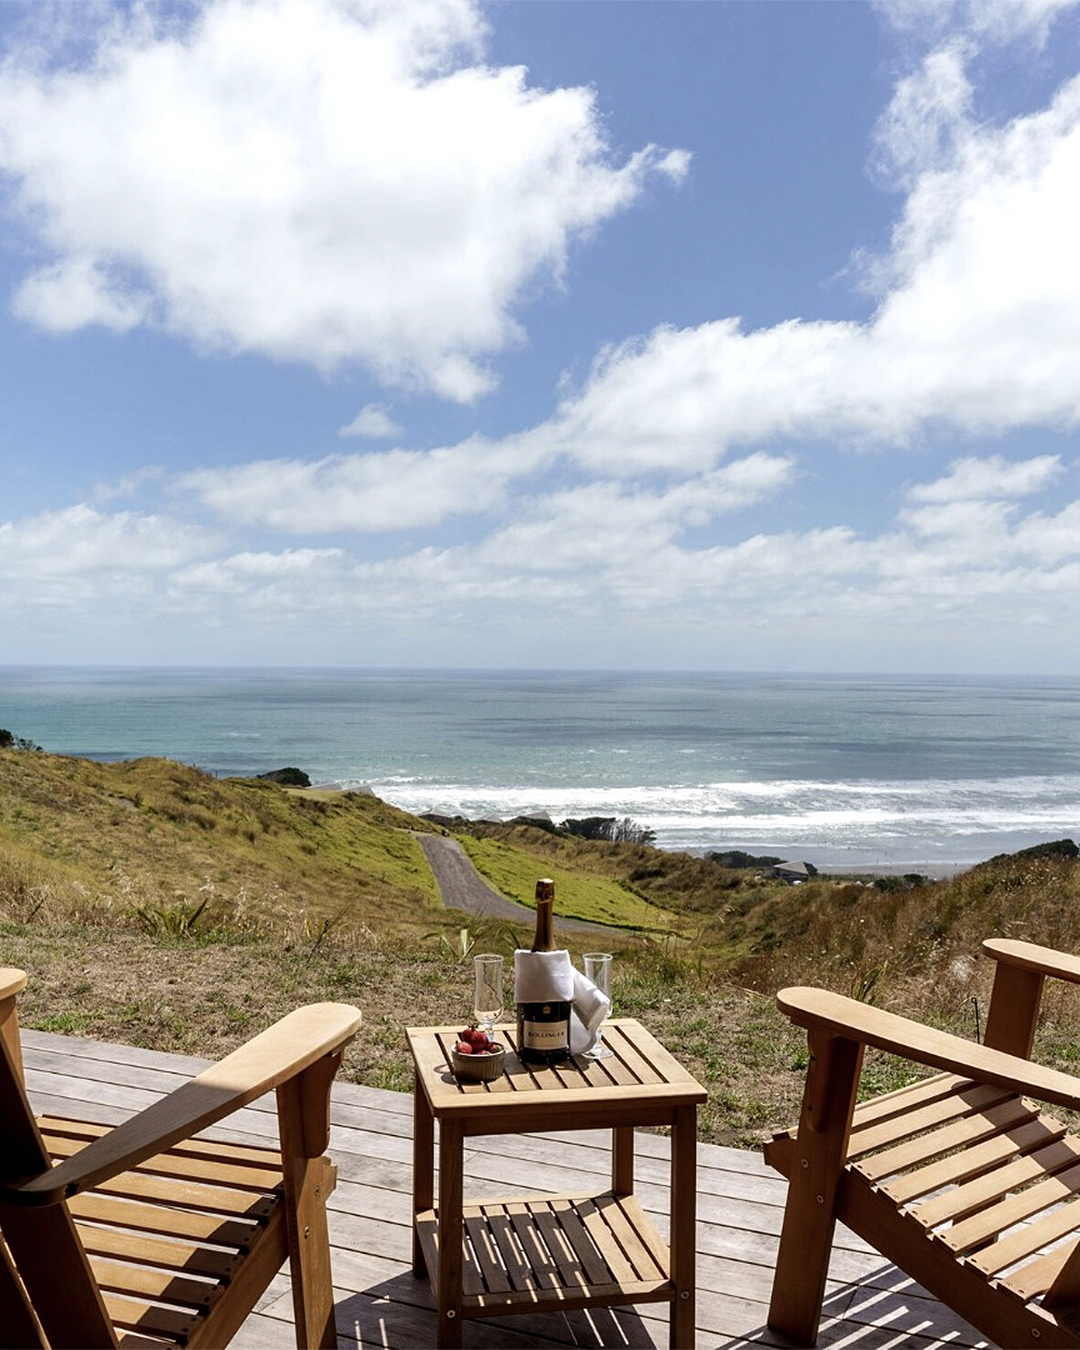 Chairs overlooking a wonderful view at Castaways.